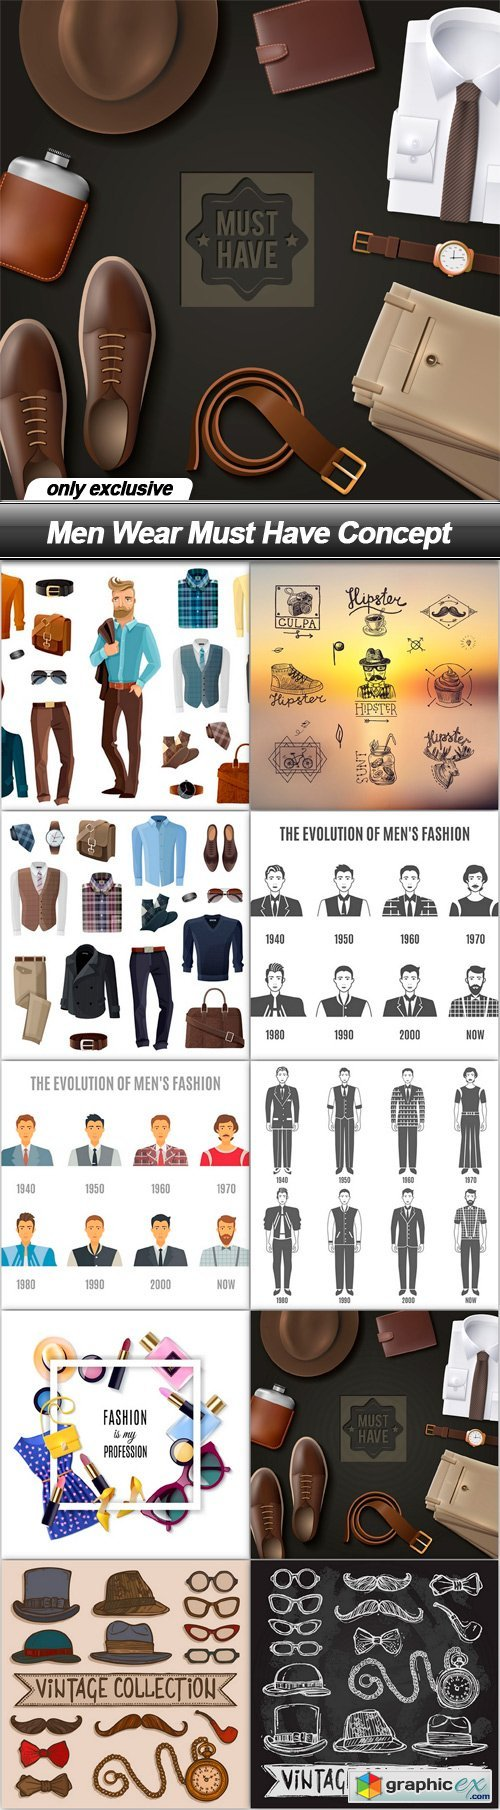 Men Wear Must Have Concept - 10 EPS